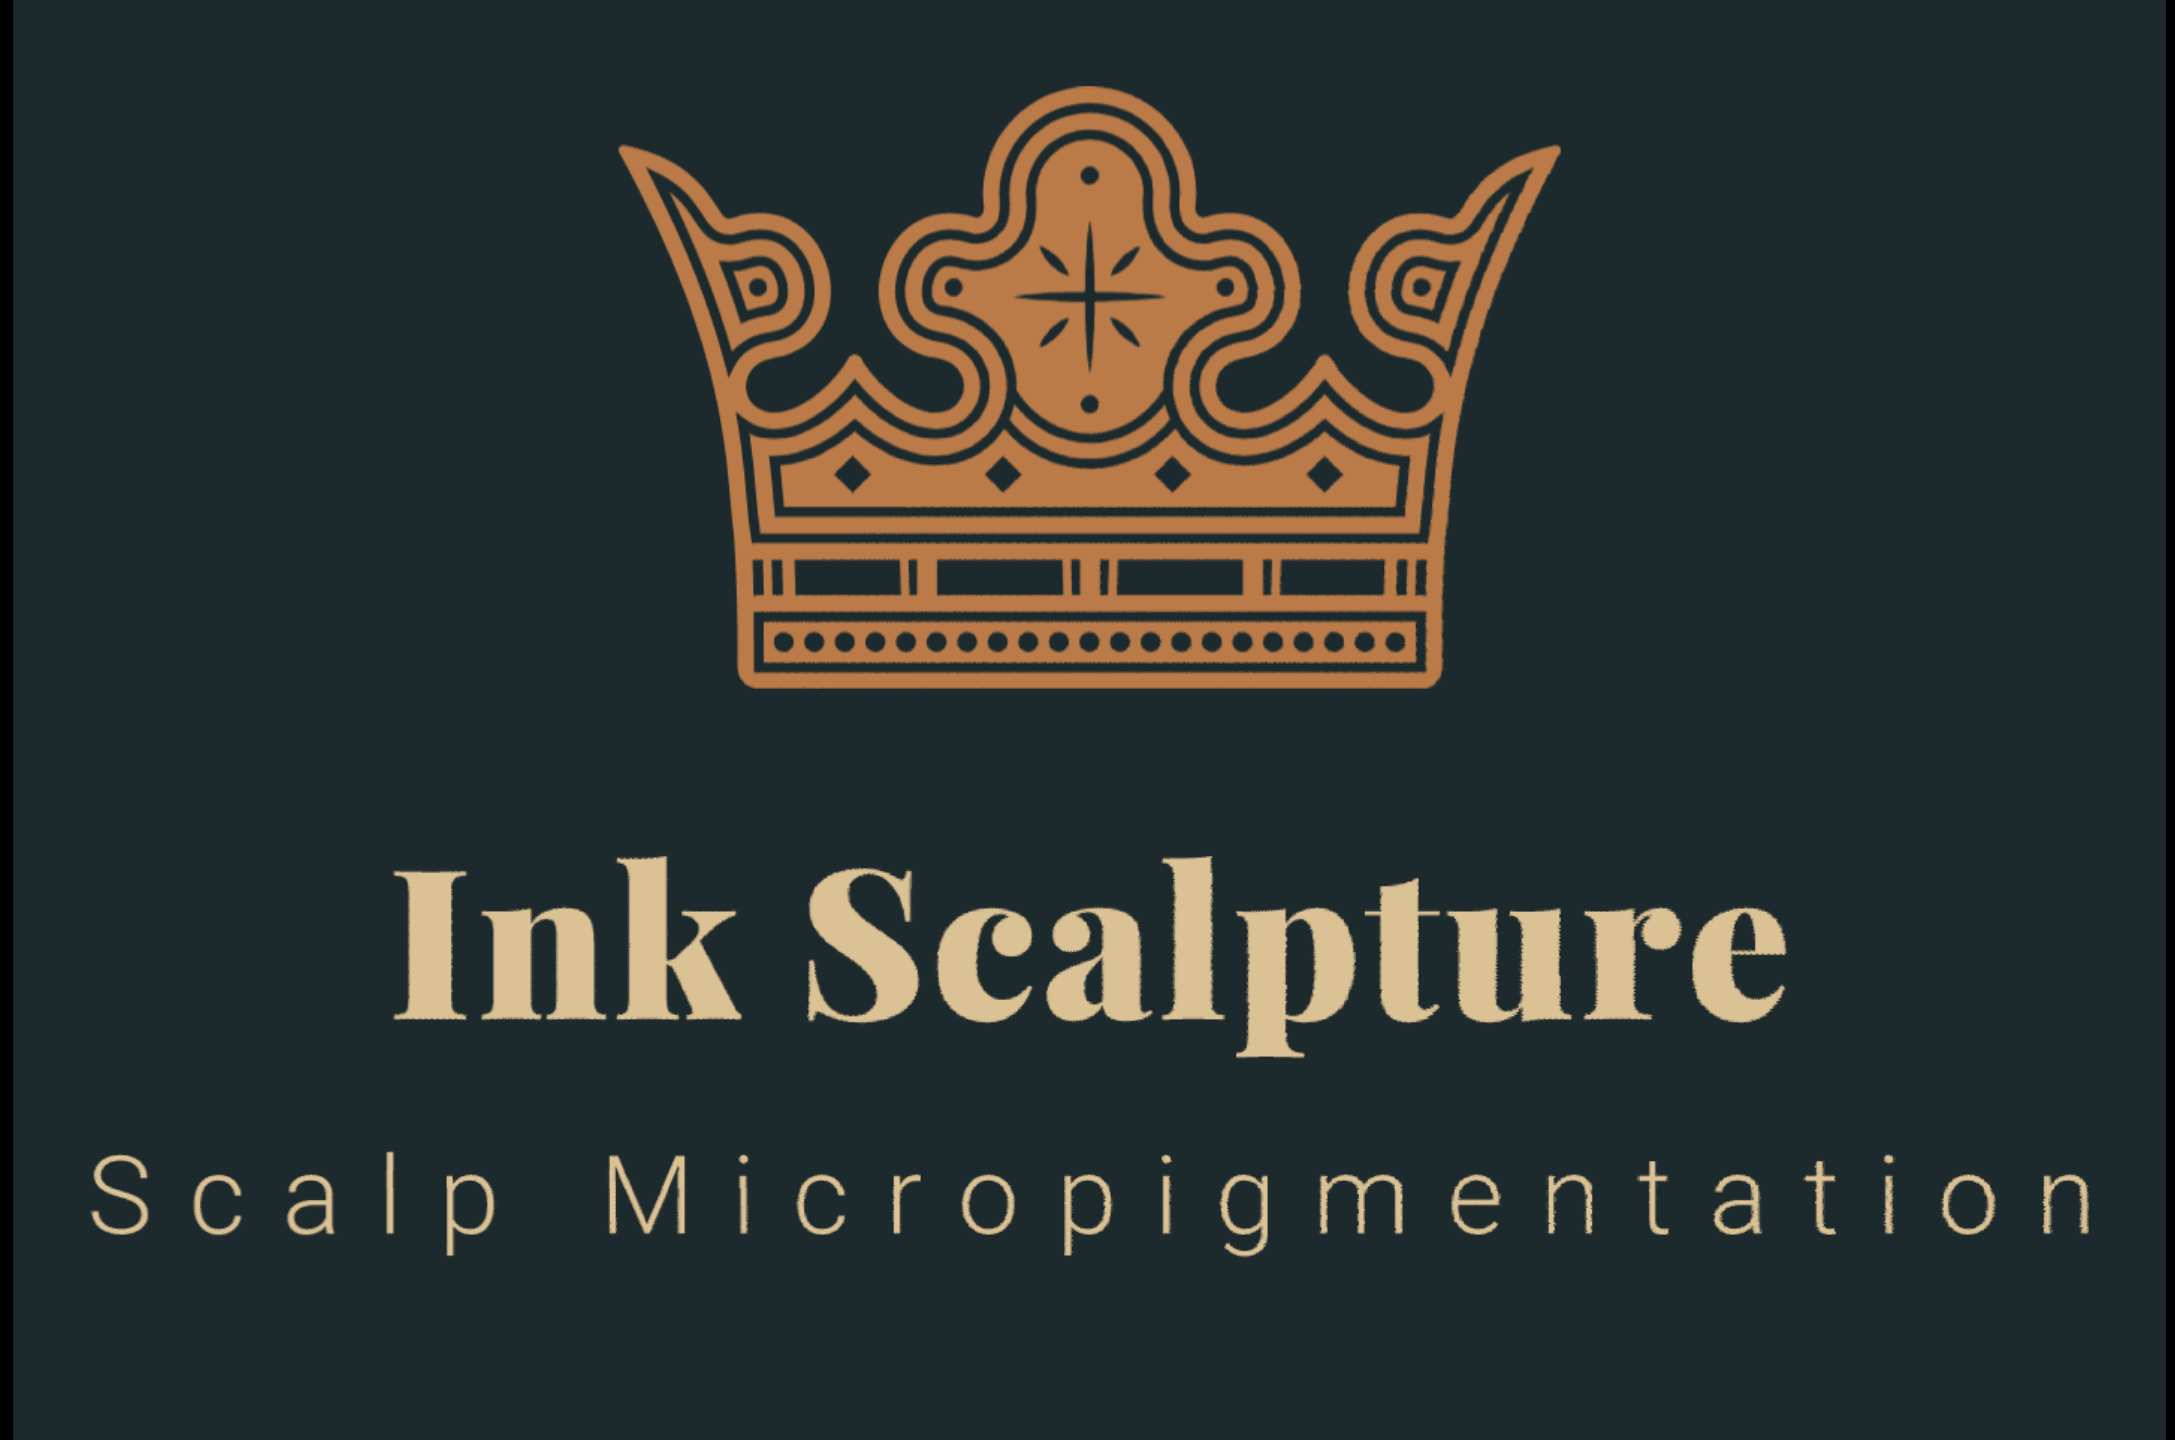 Ink Scalpture